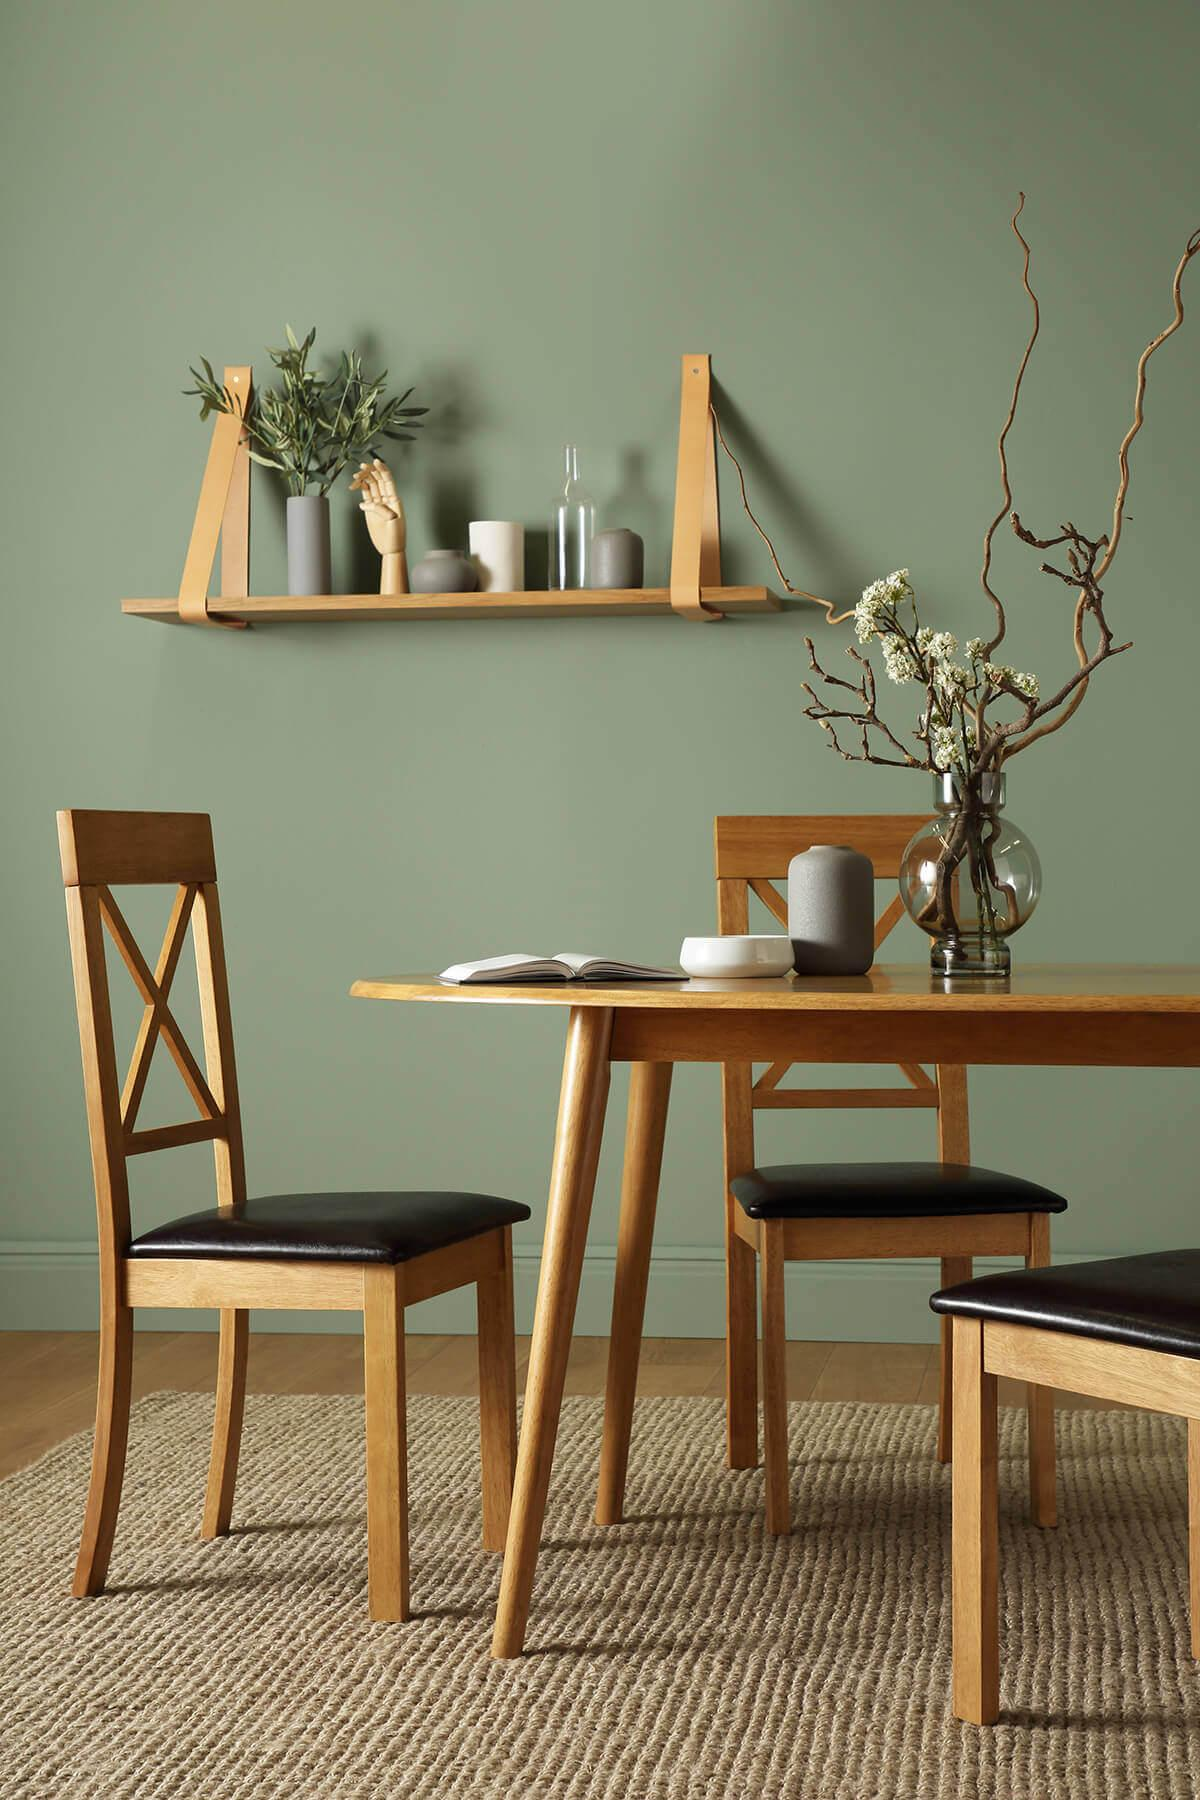 Suffolk Oval Oak Dining Table - with 4 Kendal Brown Chairs